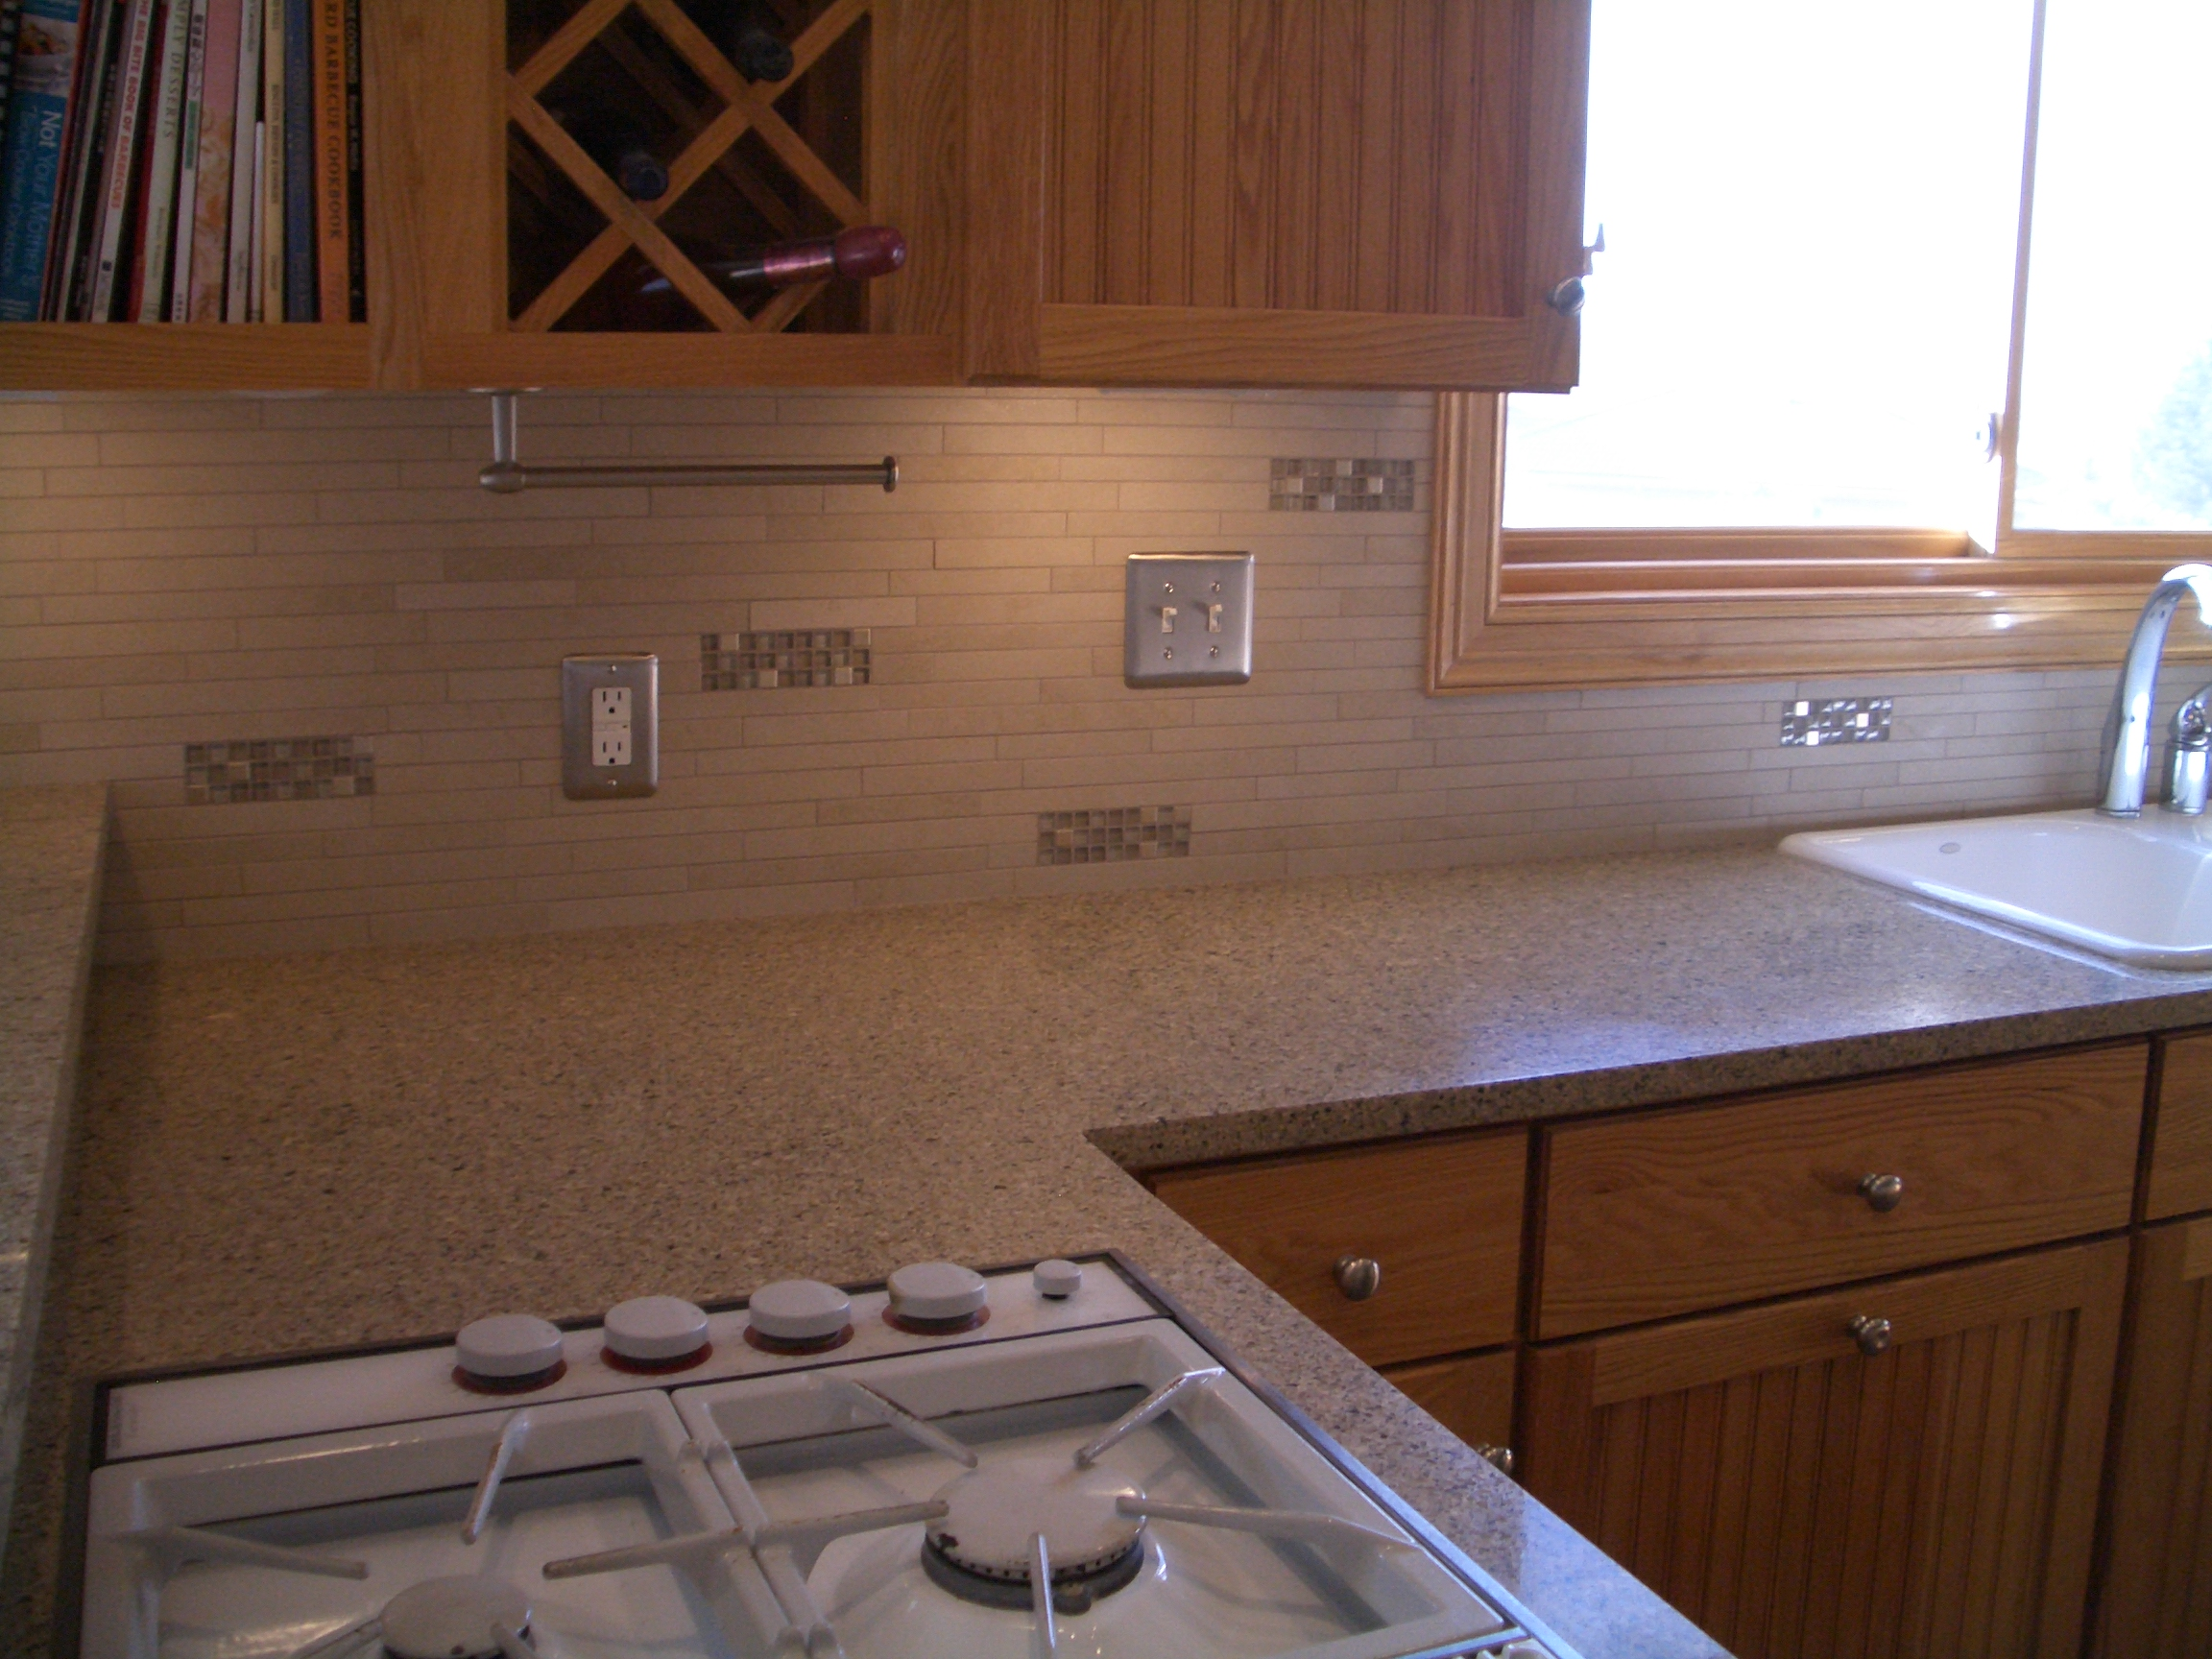 Kitchen Backsplash Accent Tiles Photos porcelain and glass kitchen backsplash in windsor